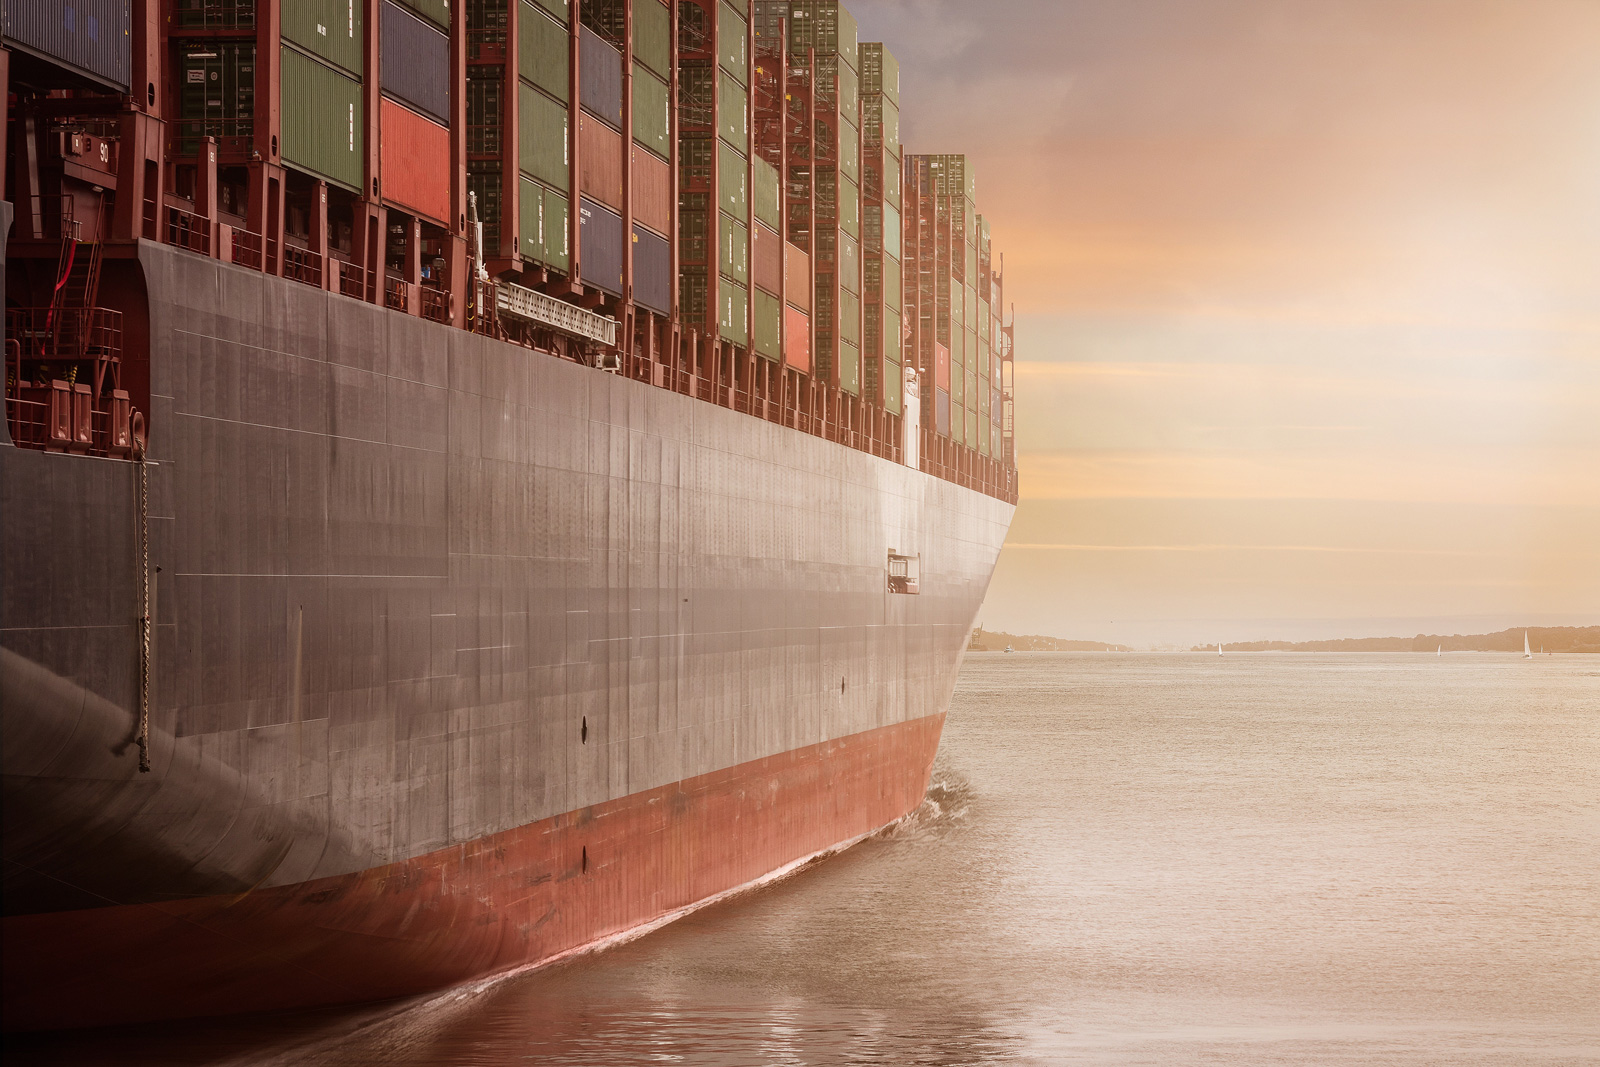 Importing and Exporting made effortless